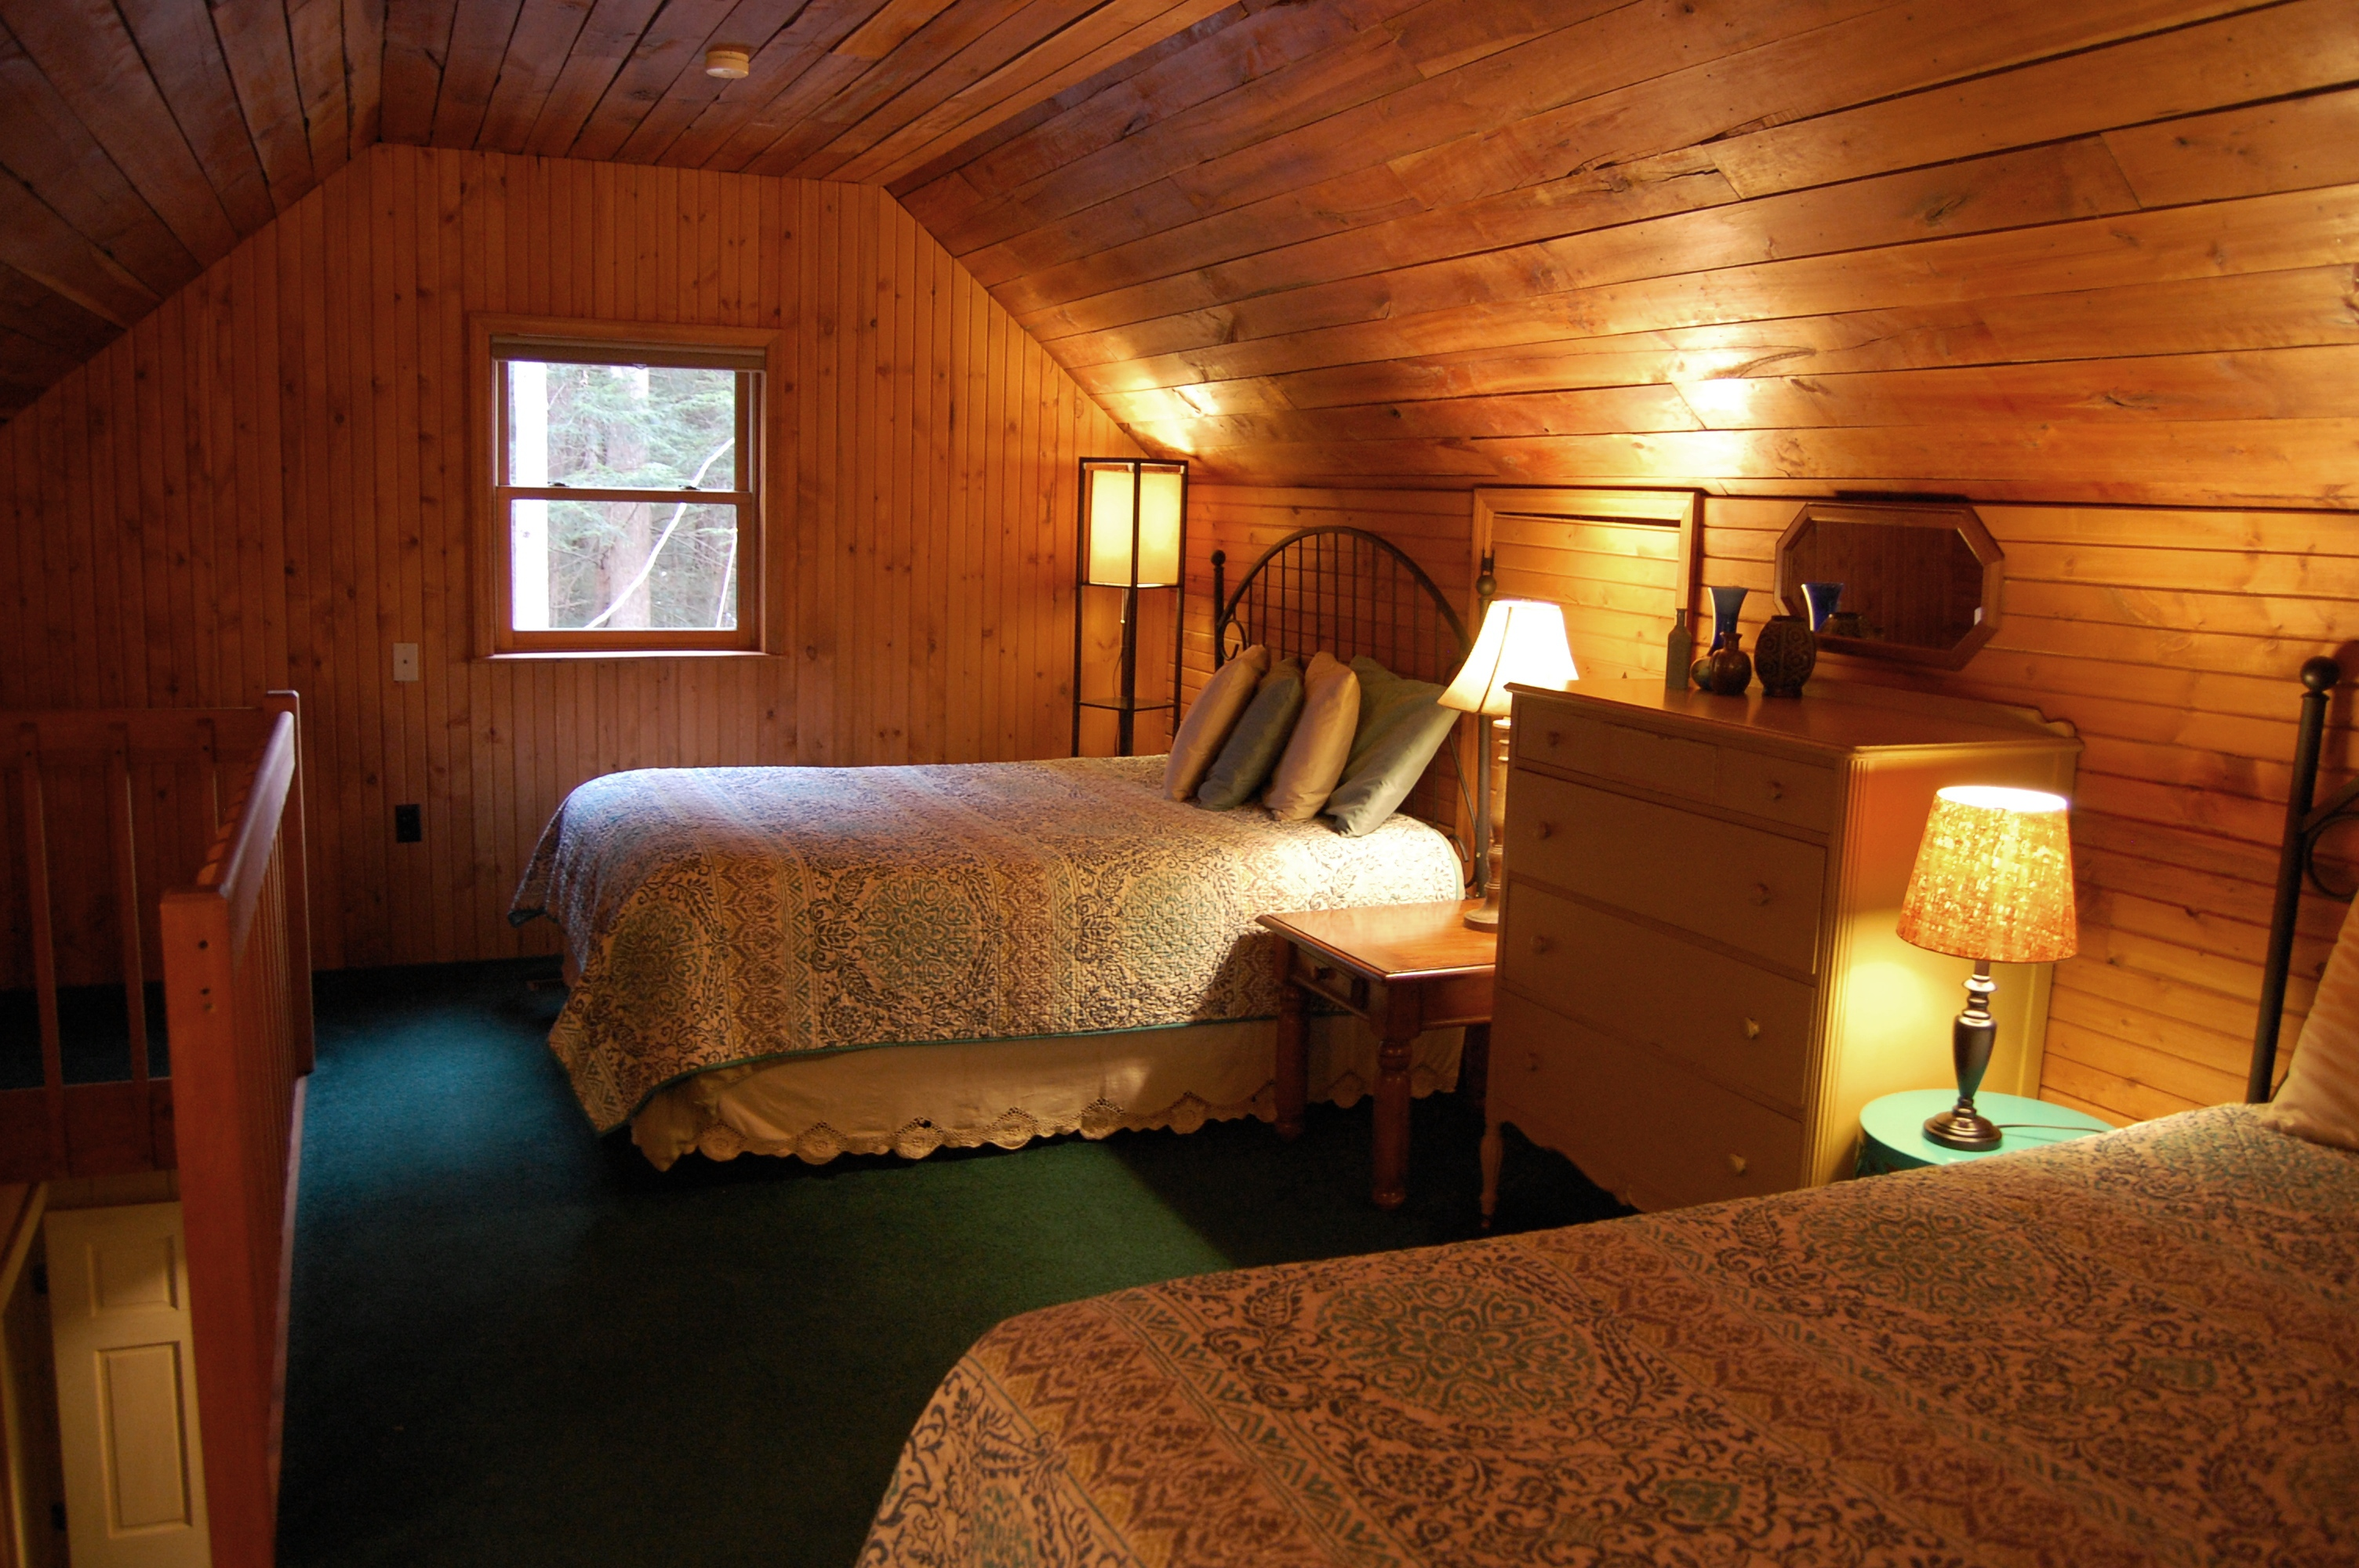 Secluded Hocking Hills Cabin at Harvest Moon Cottages